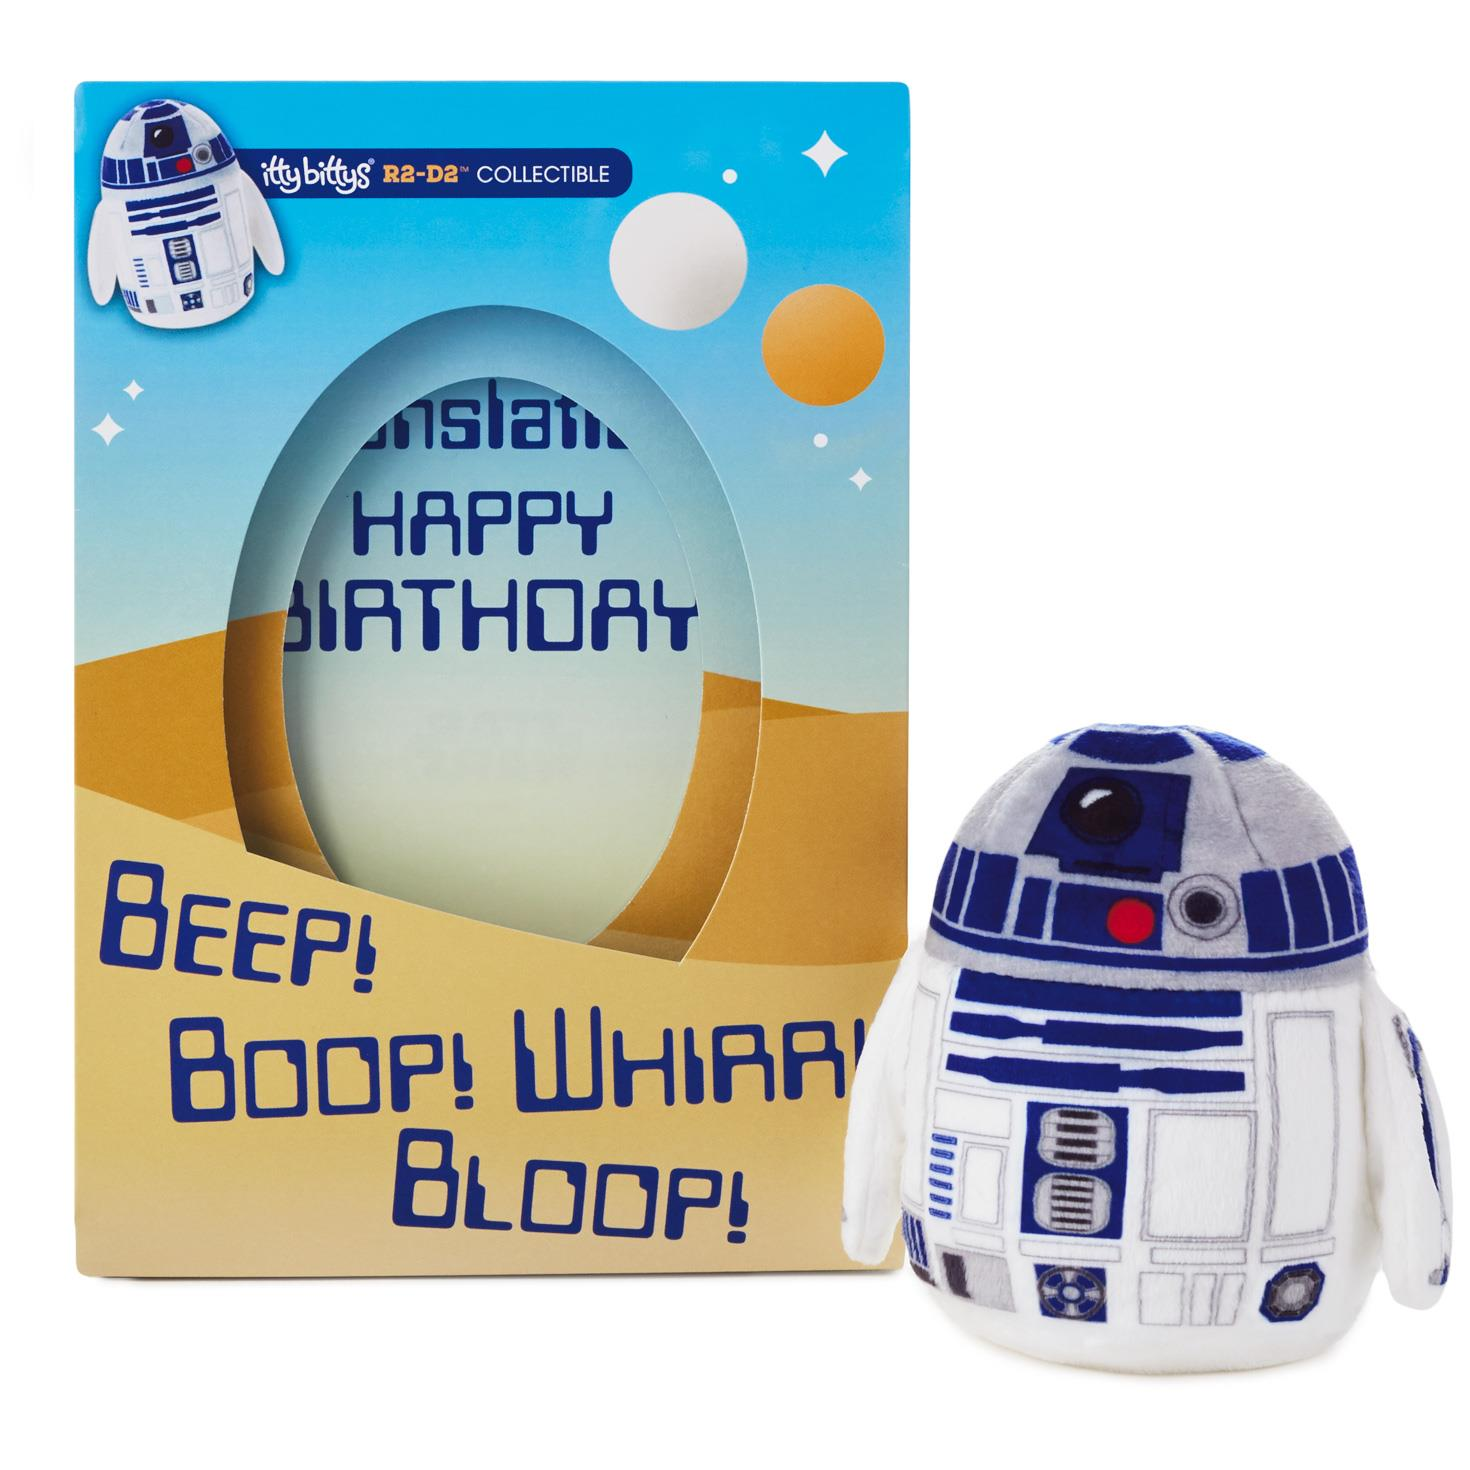 Itty bittys star wars r2 d2 birthday card with stuffed animal itty bittys star wars r2 d2 birthday card with stuffed animal bookmarktalkfo Choice Image